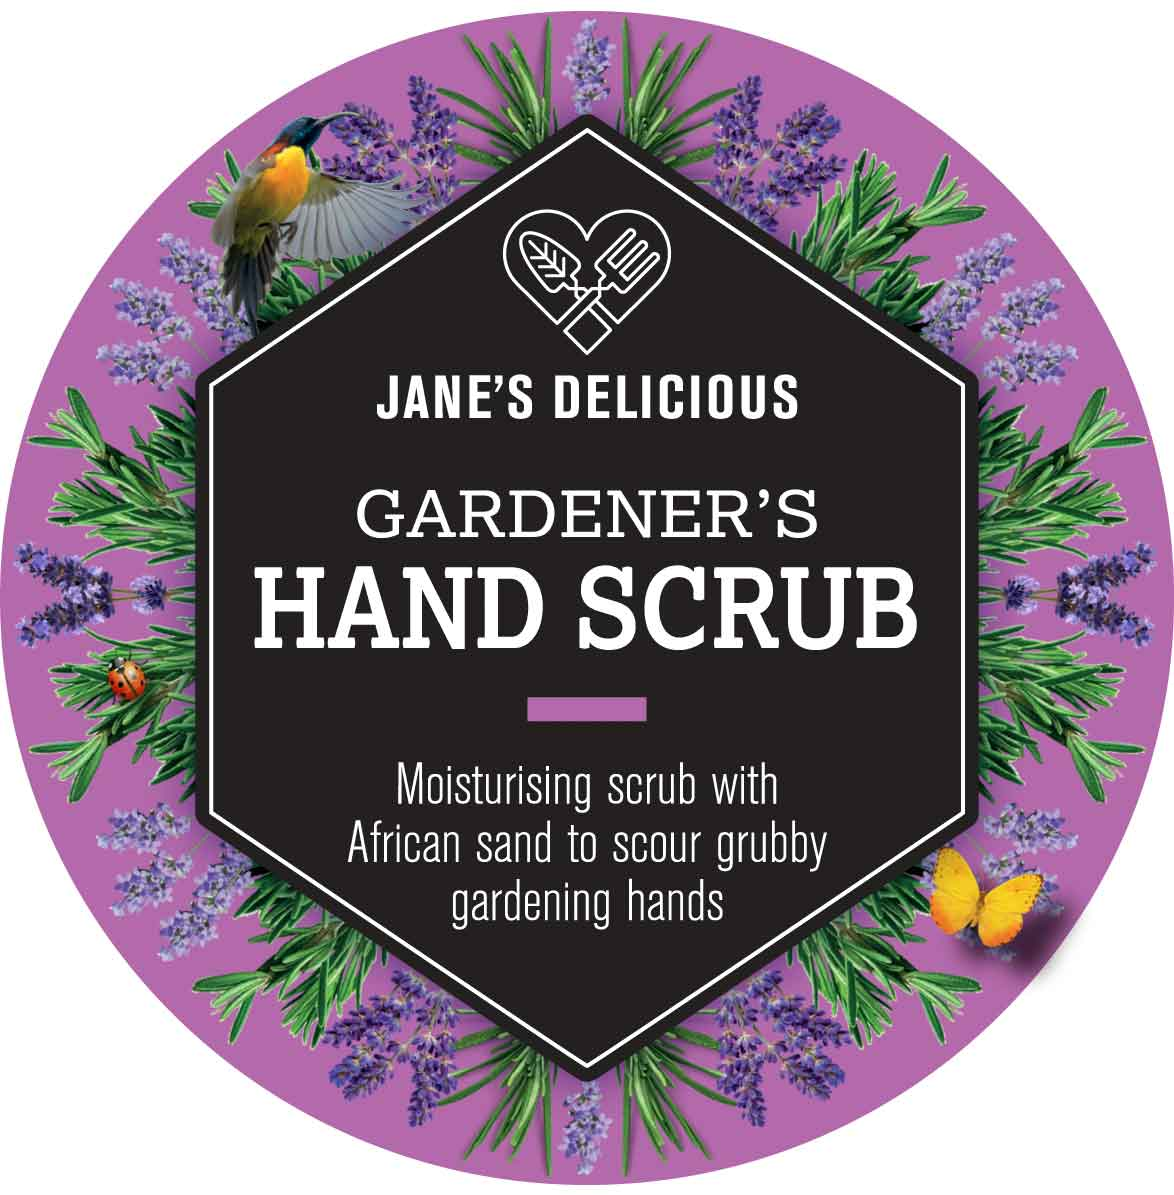 A moisturising and deep cleansing scrub to scour grubby gardening hands and heels. 